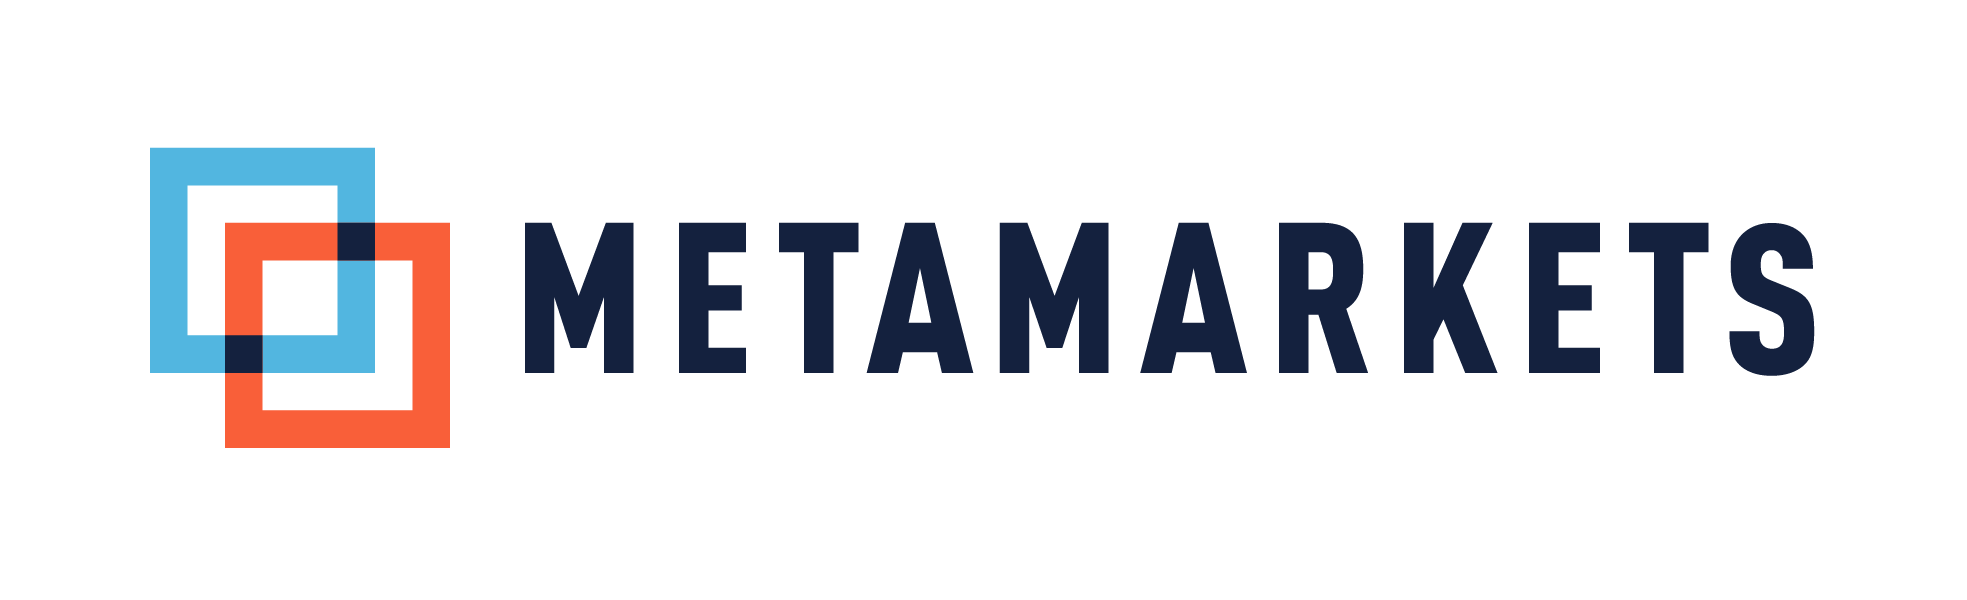 Metamarkets logo